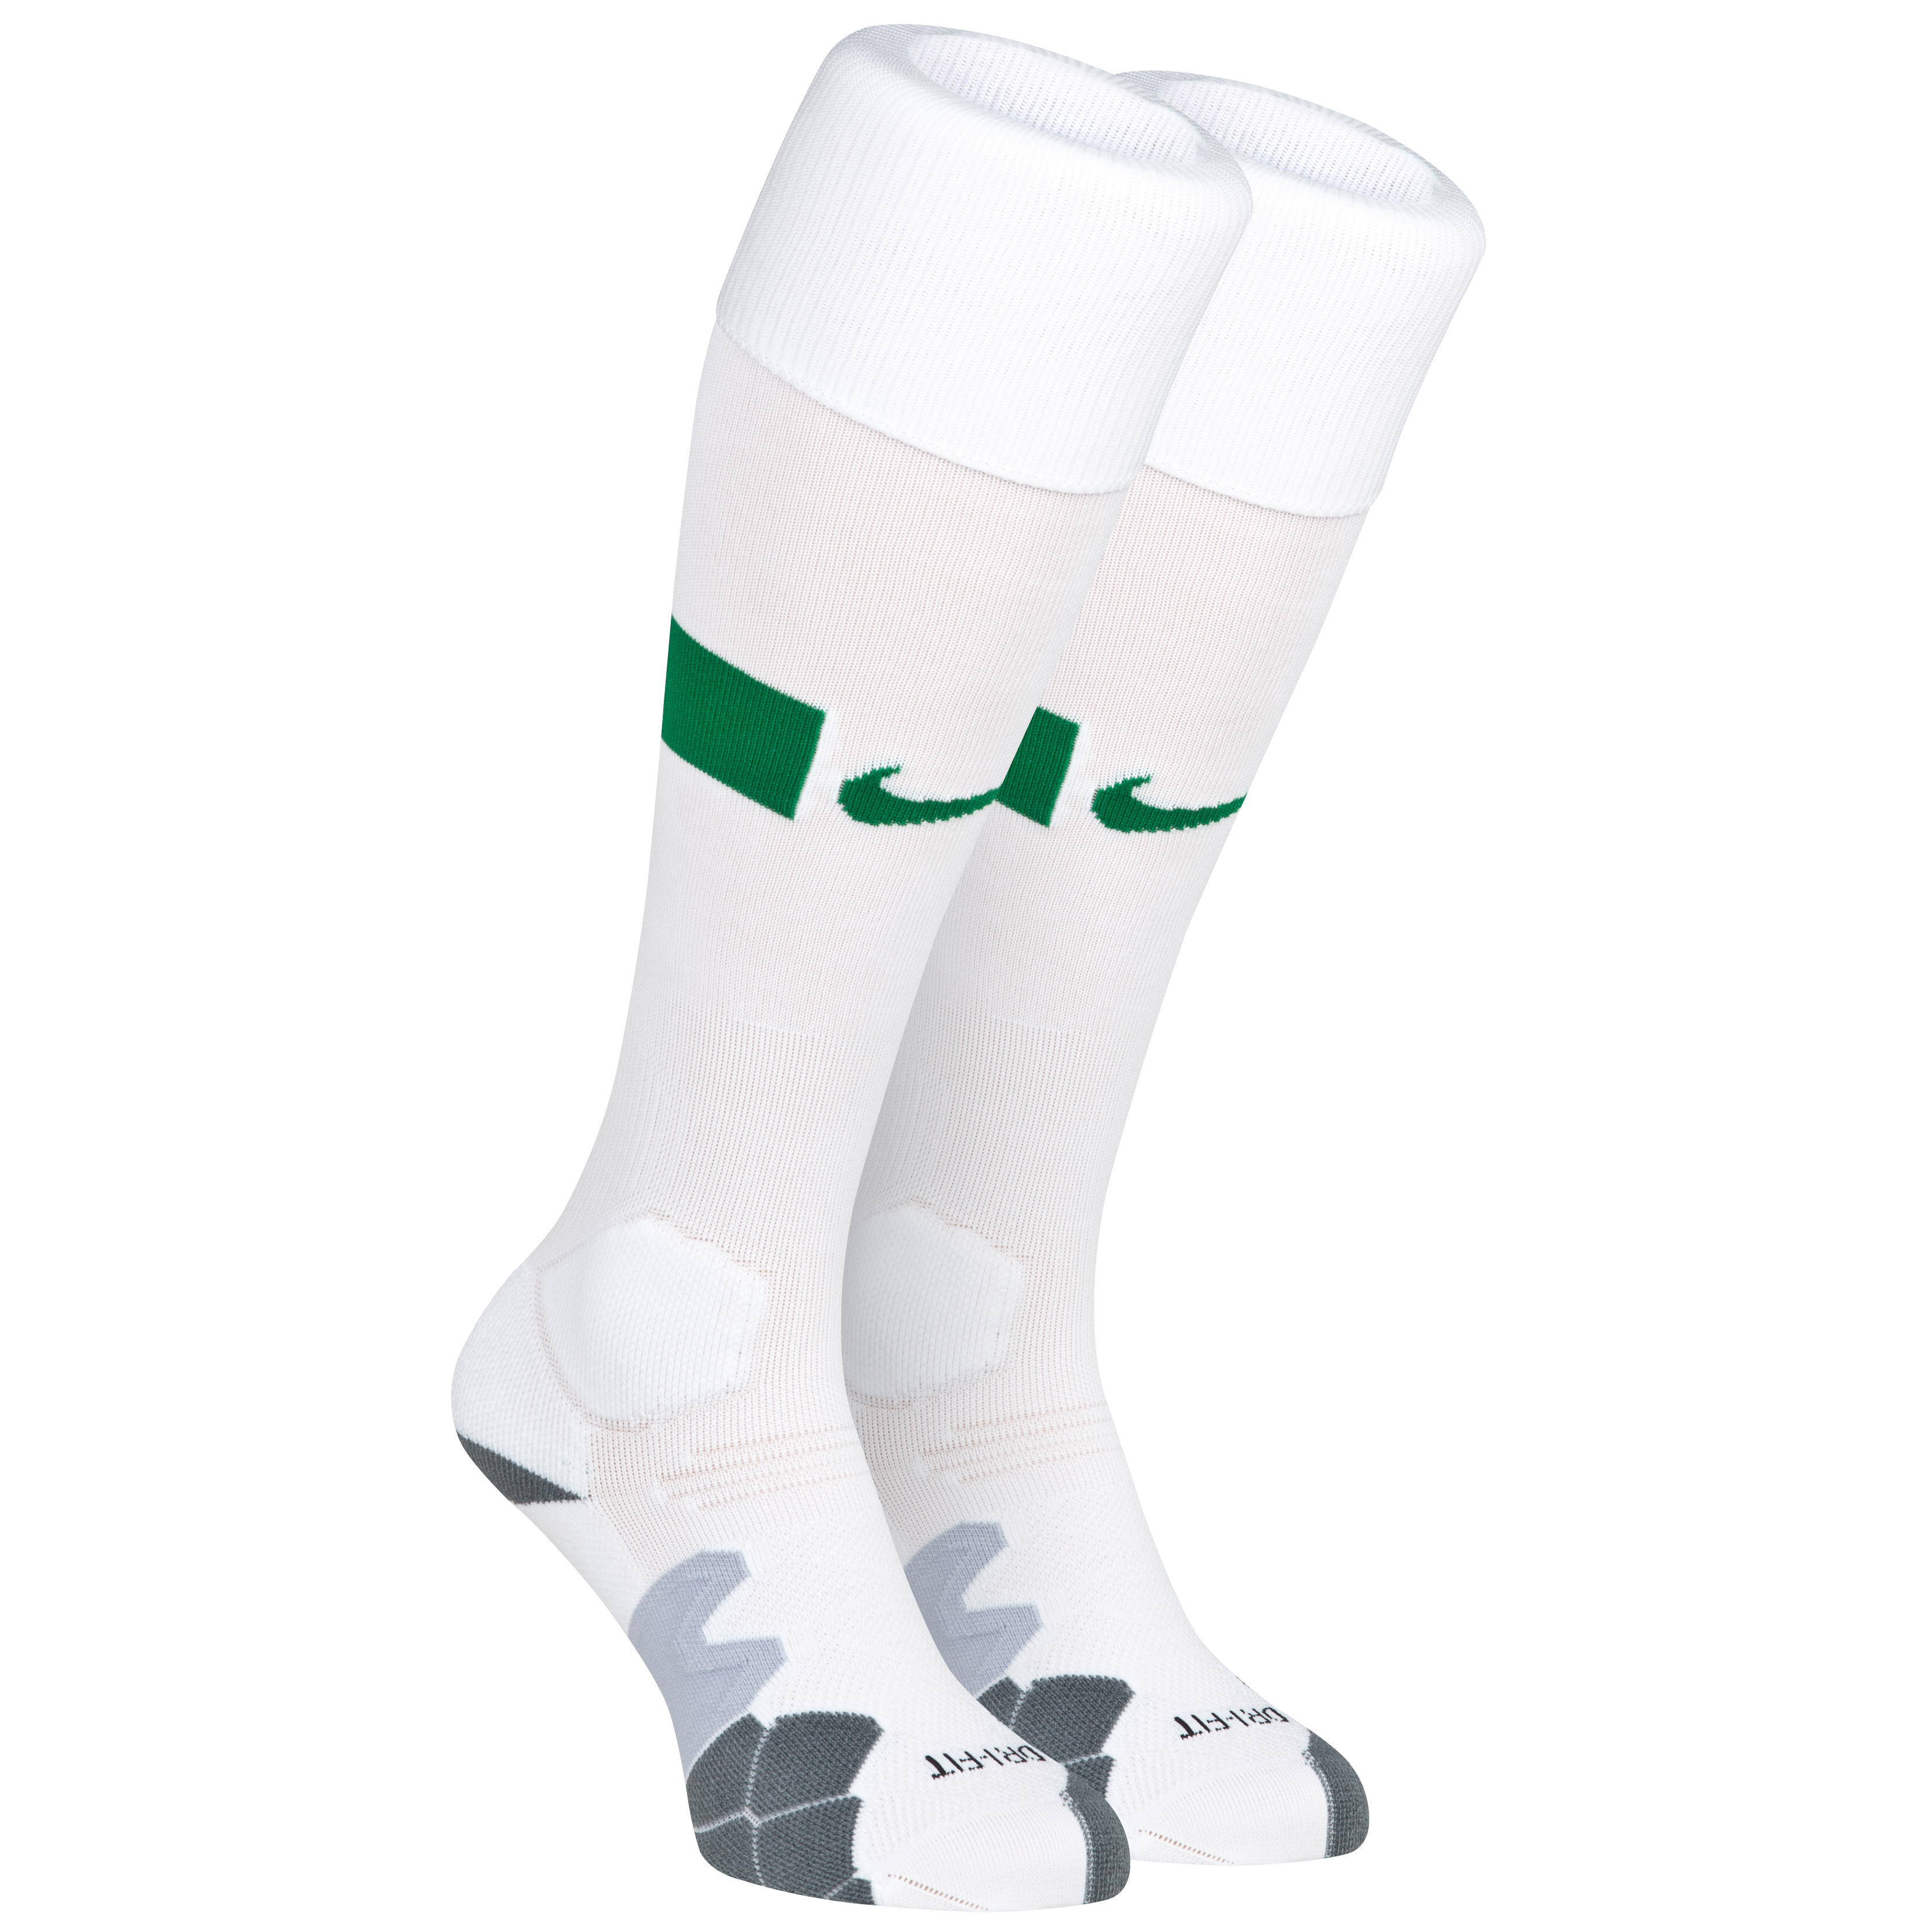 Brazil Home Sock 2013/14 - Football White/Pine Green/Pine Green